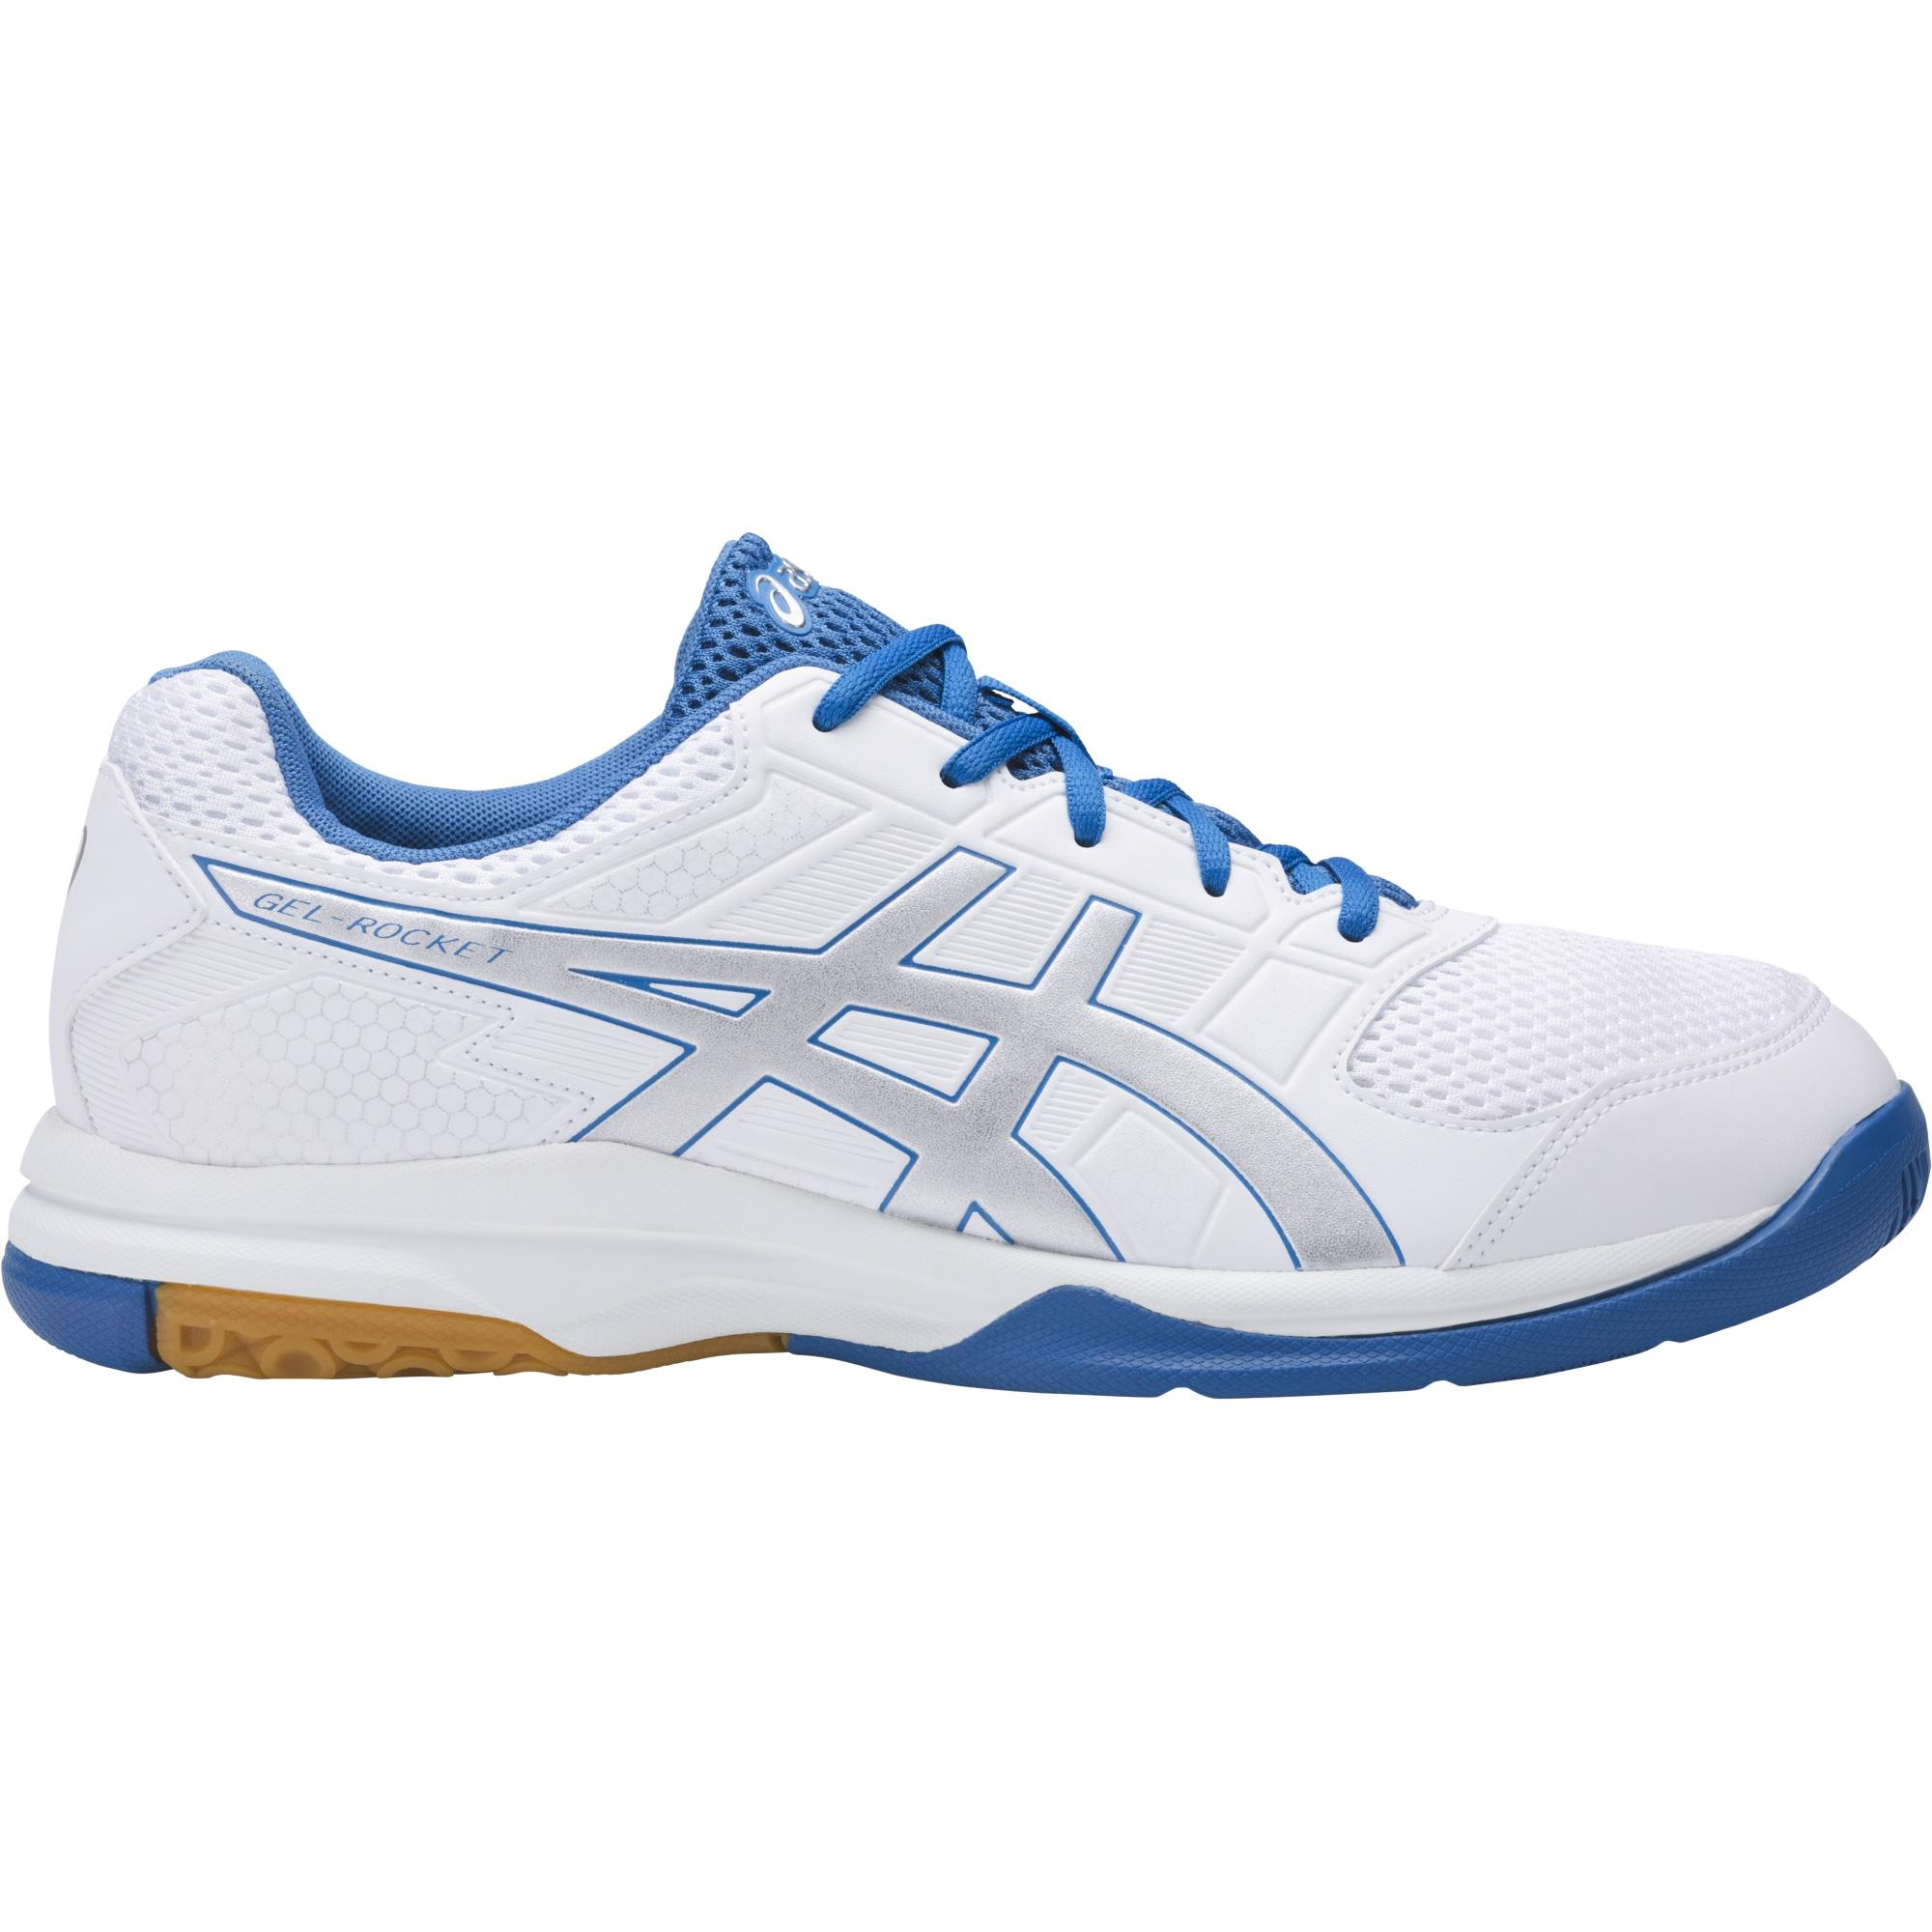 9e298c63360405 Asics Mens GEL-Rocket 8 Indoor Court Shoes - White Blue - Tennisnuts.com